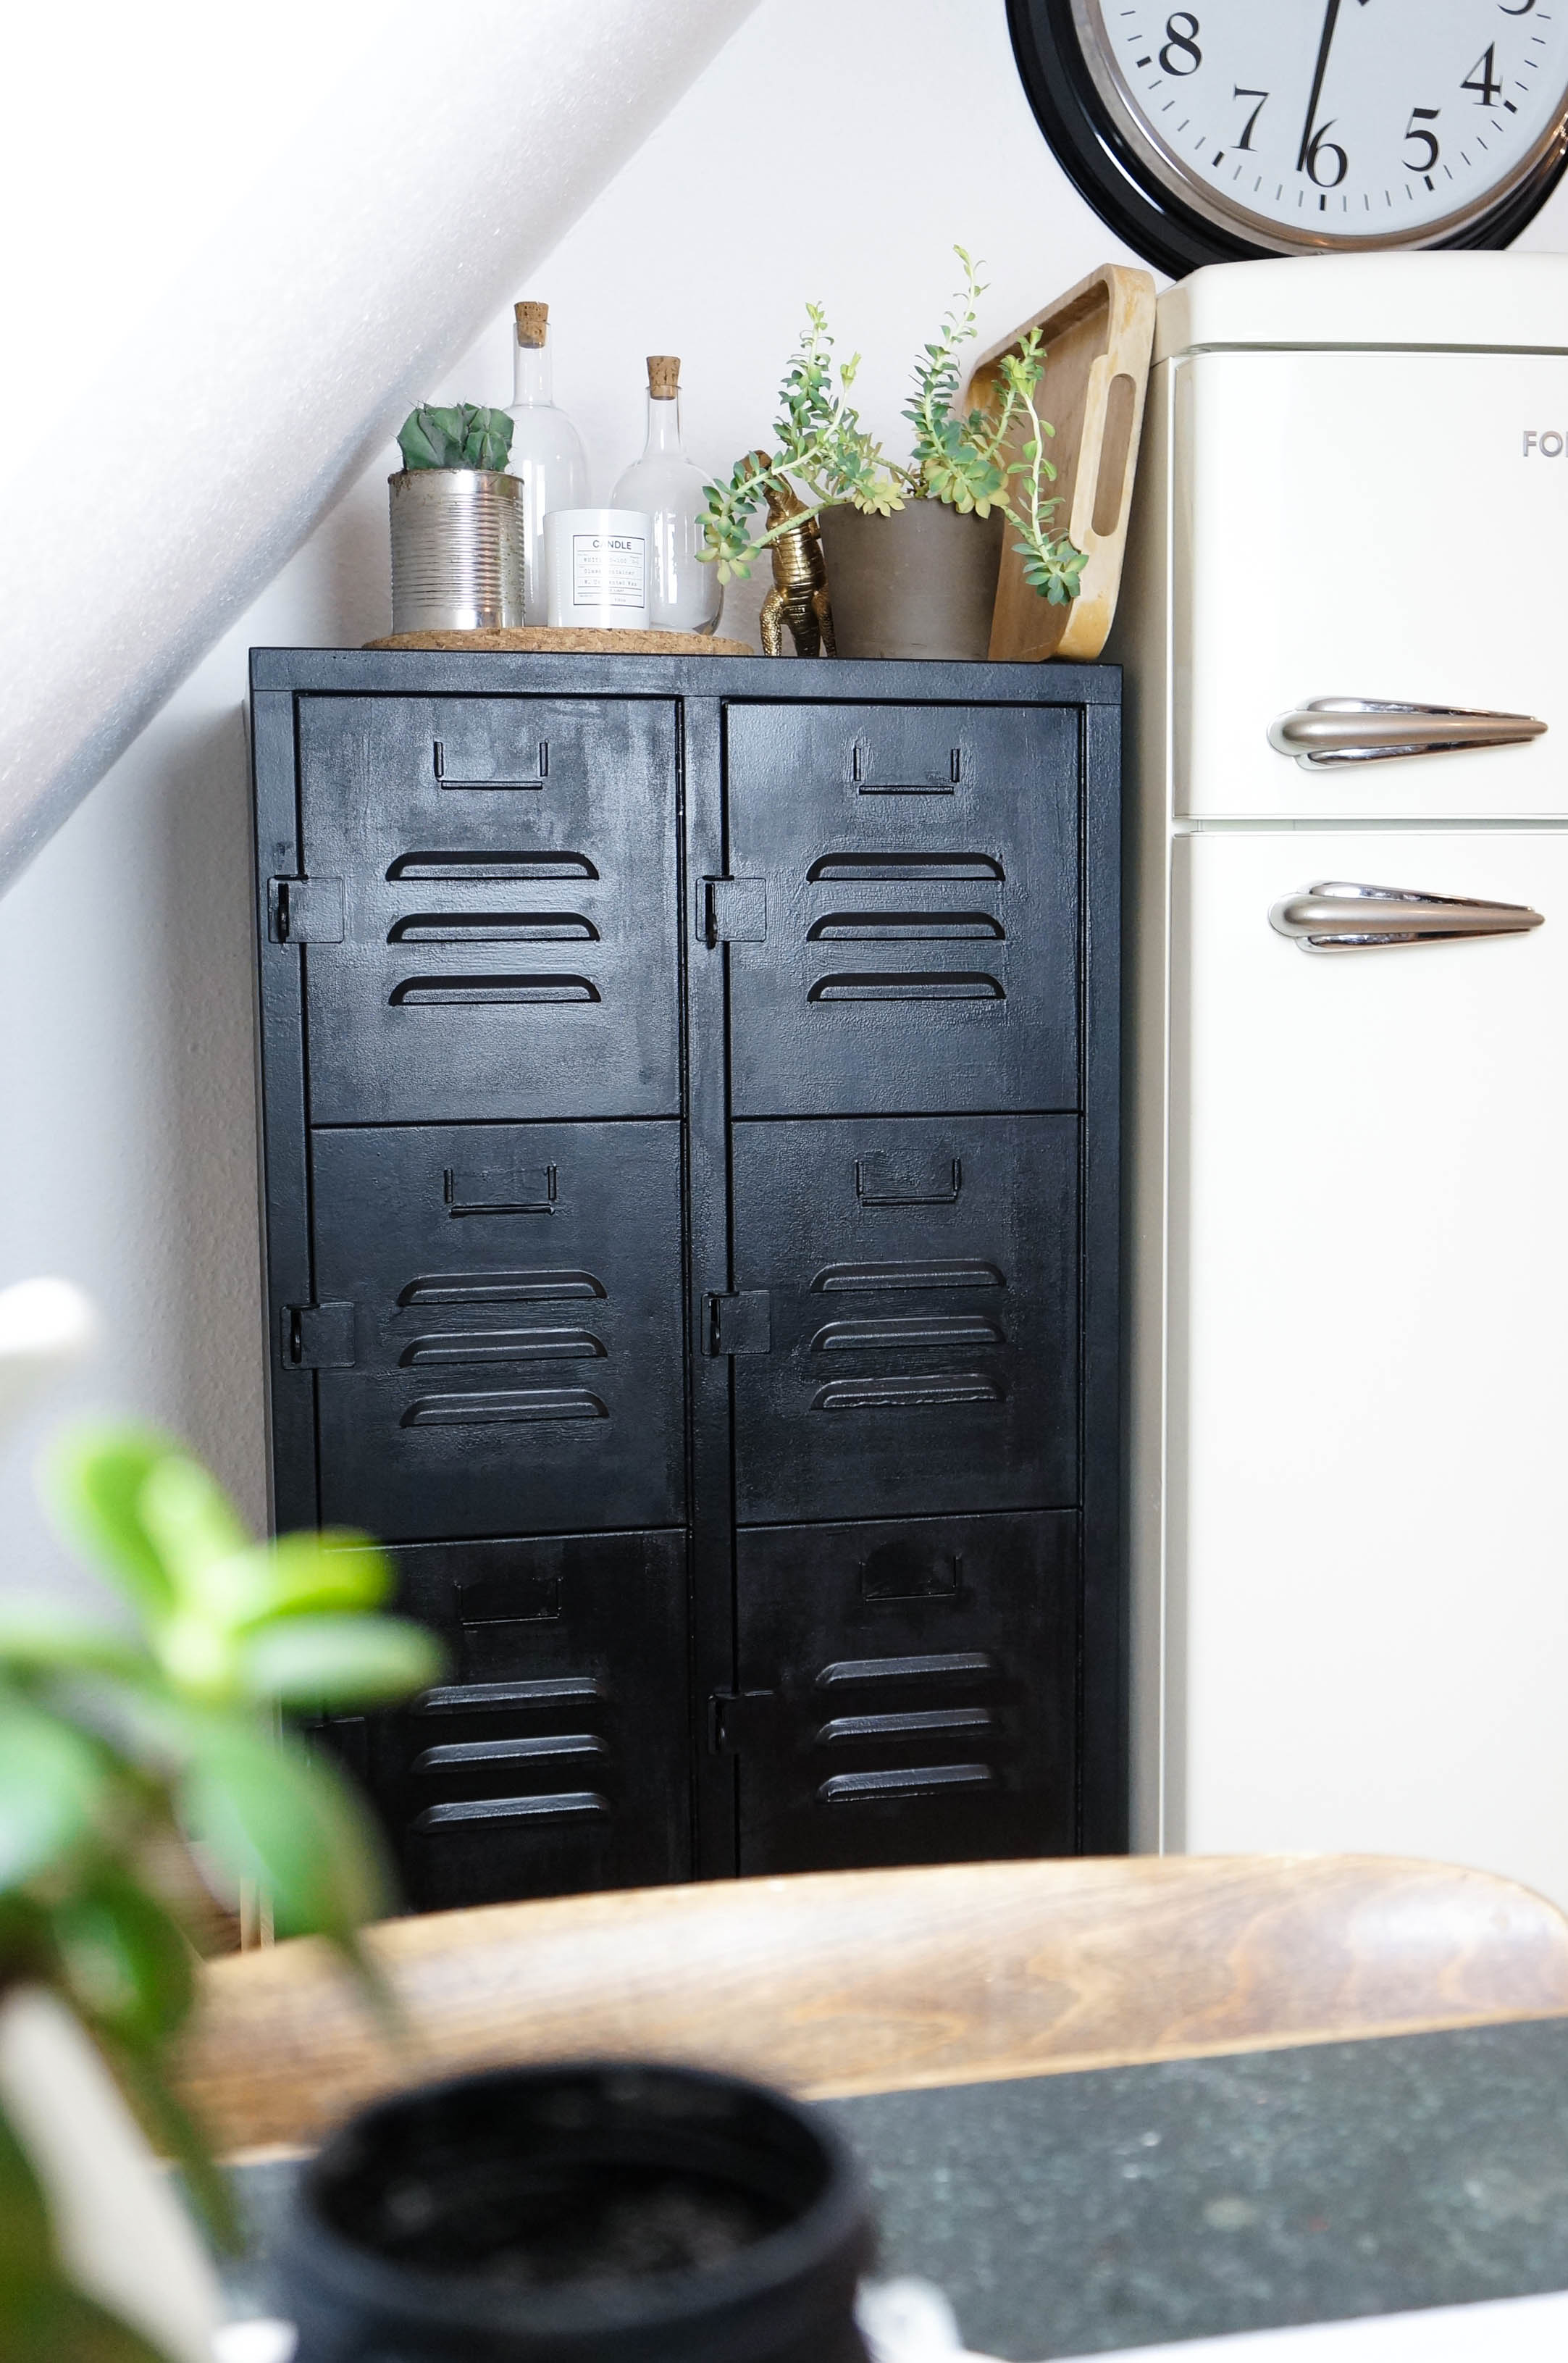 Makeover - Spindschrank - todayis.de